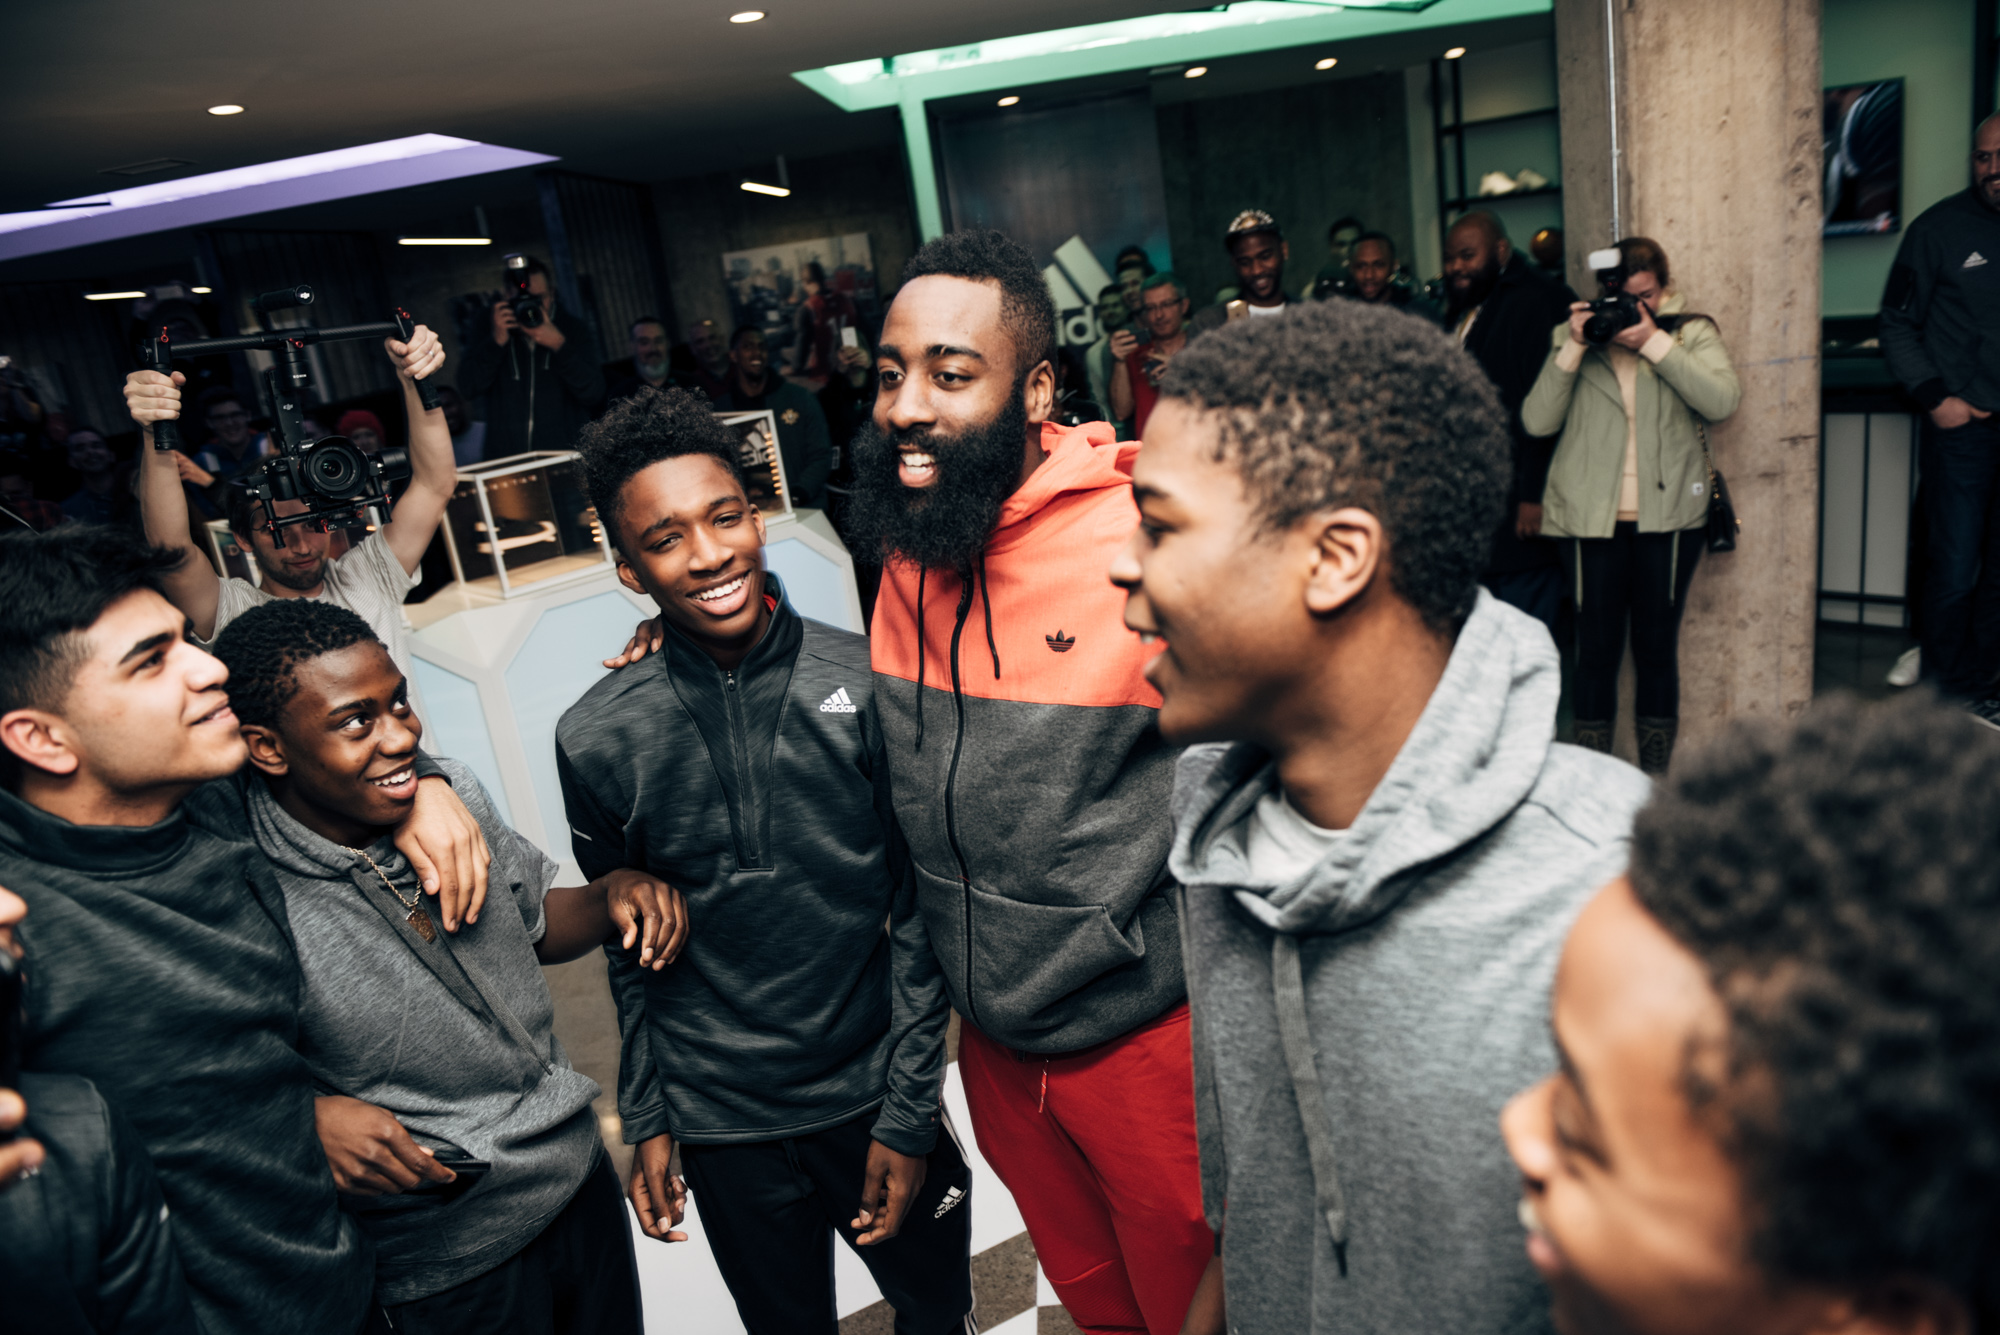 Houston Rocket's James Harden surprises a group of local high schoolers at the adidas product vault.